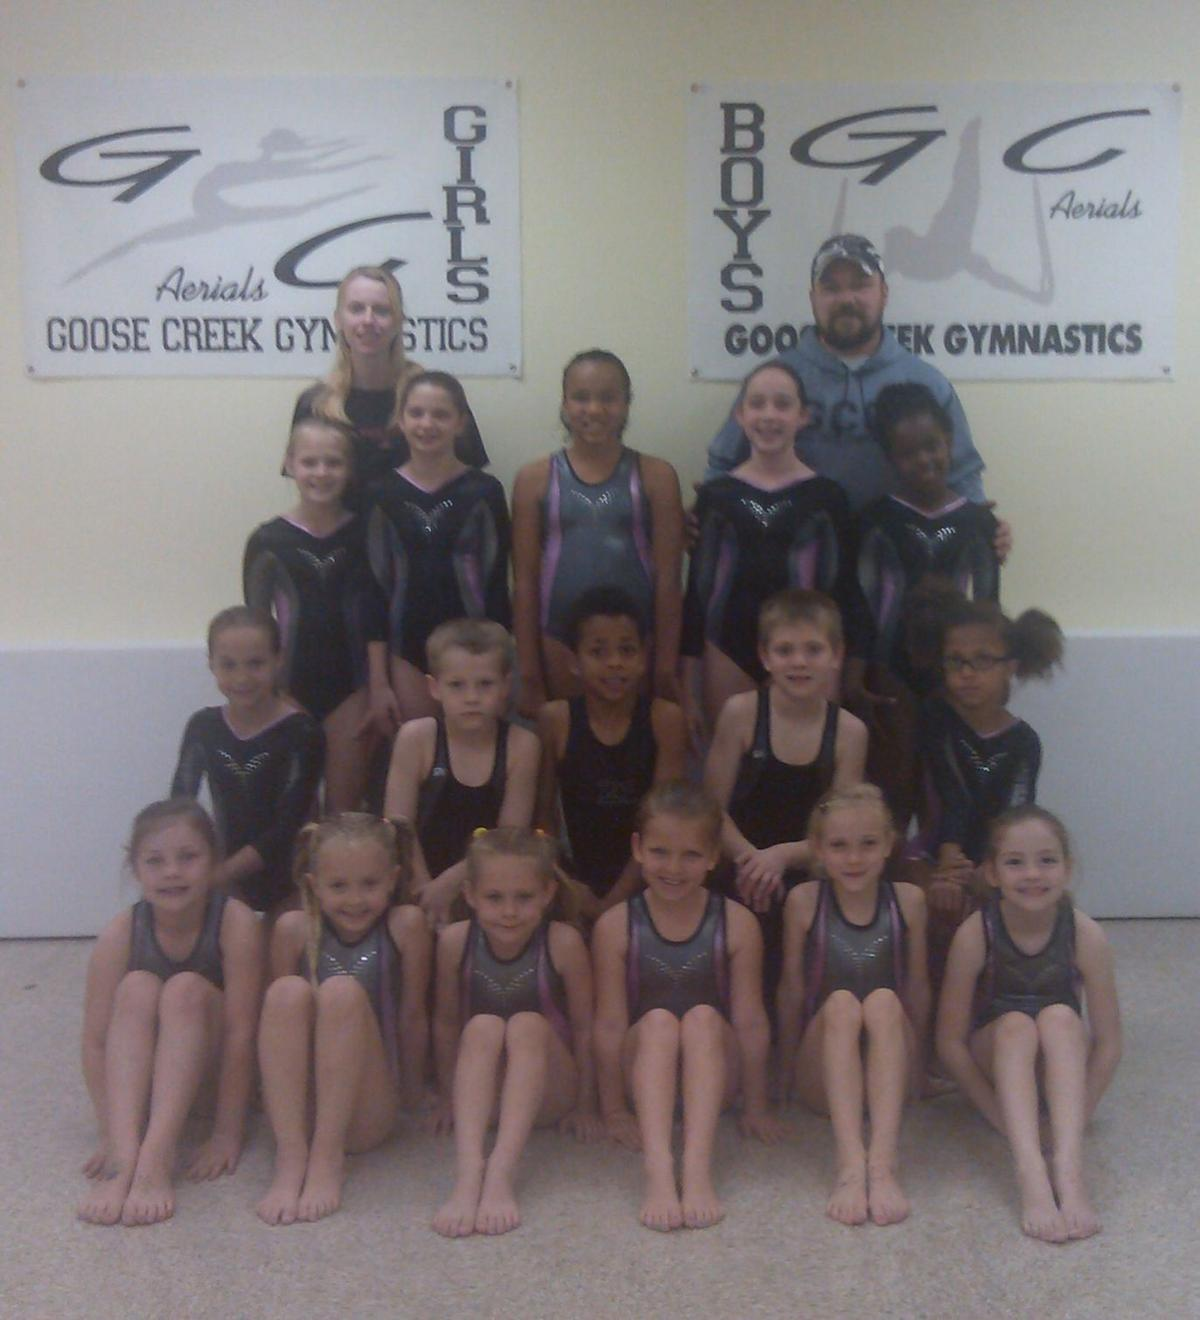 Goose Creek gymnastics program soars at contest